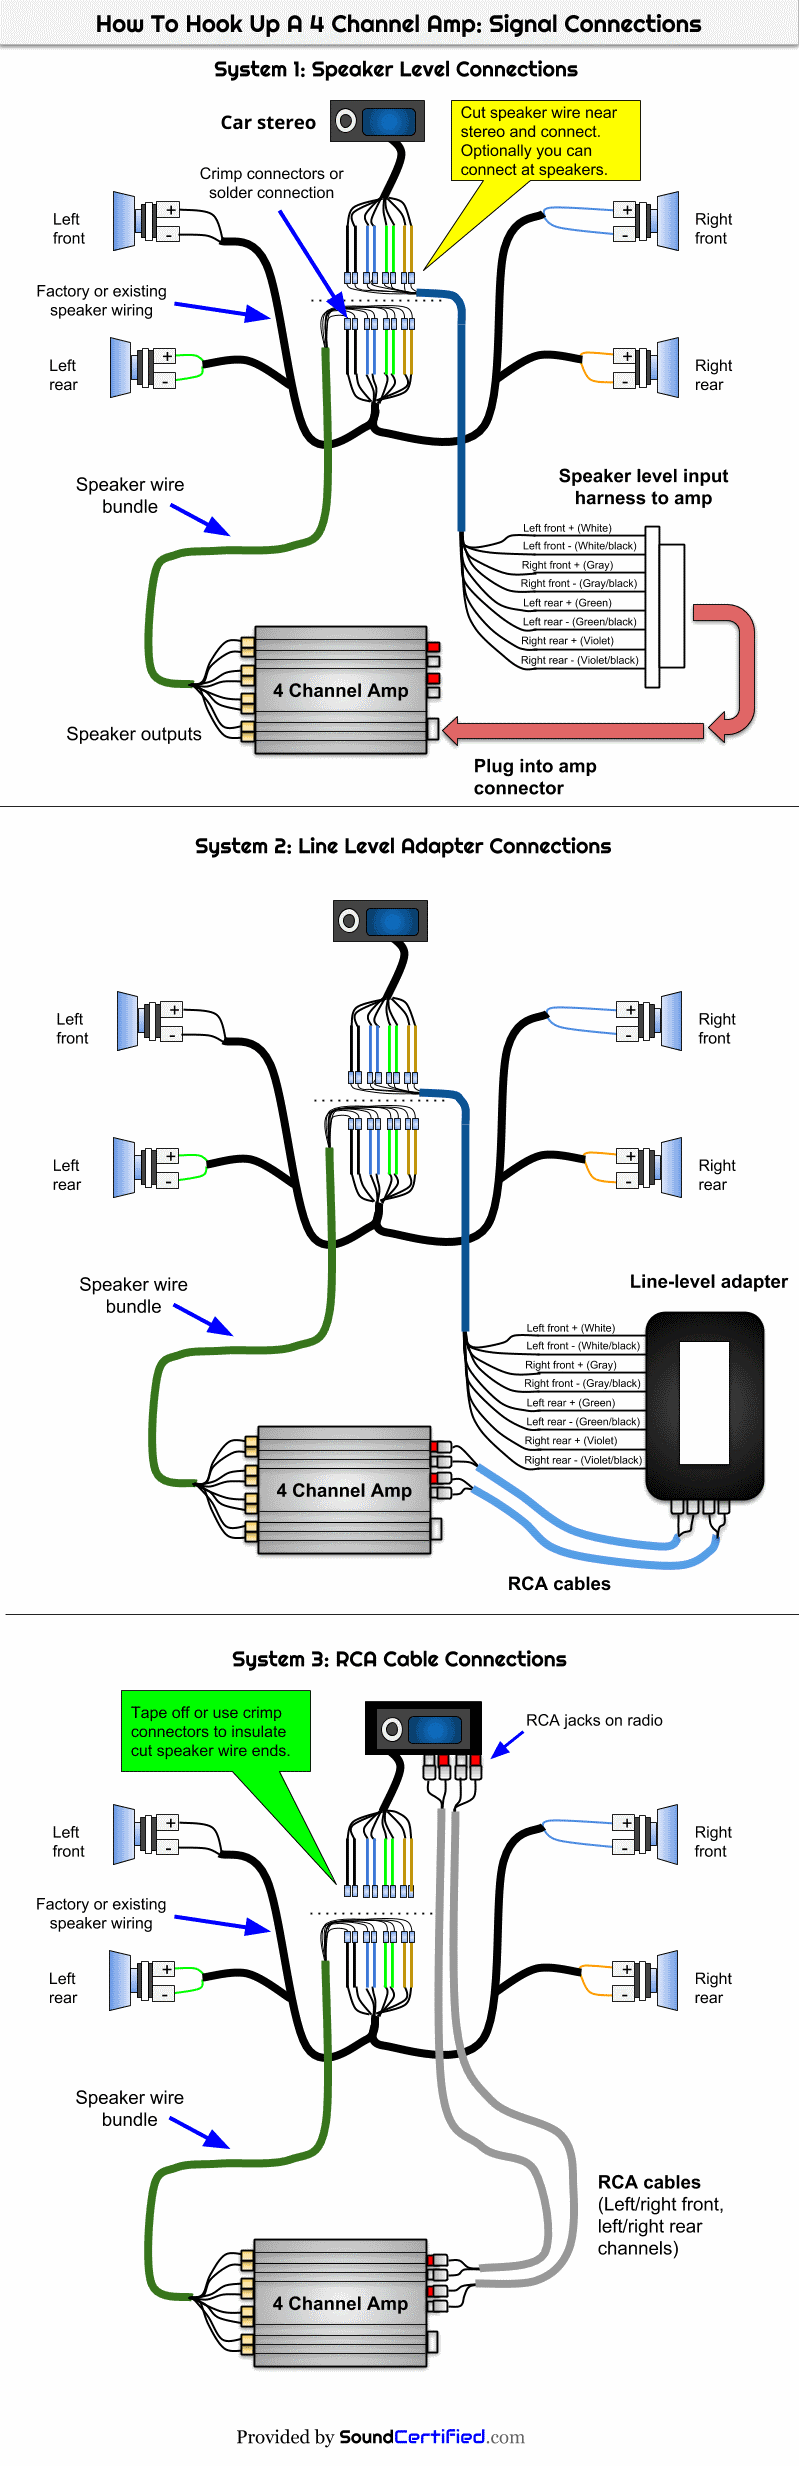 How To Hook Up A 4 Channel Amp Front And Rear Speakers Wire Connector Diagram Signal Connection